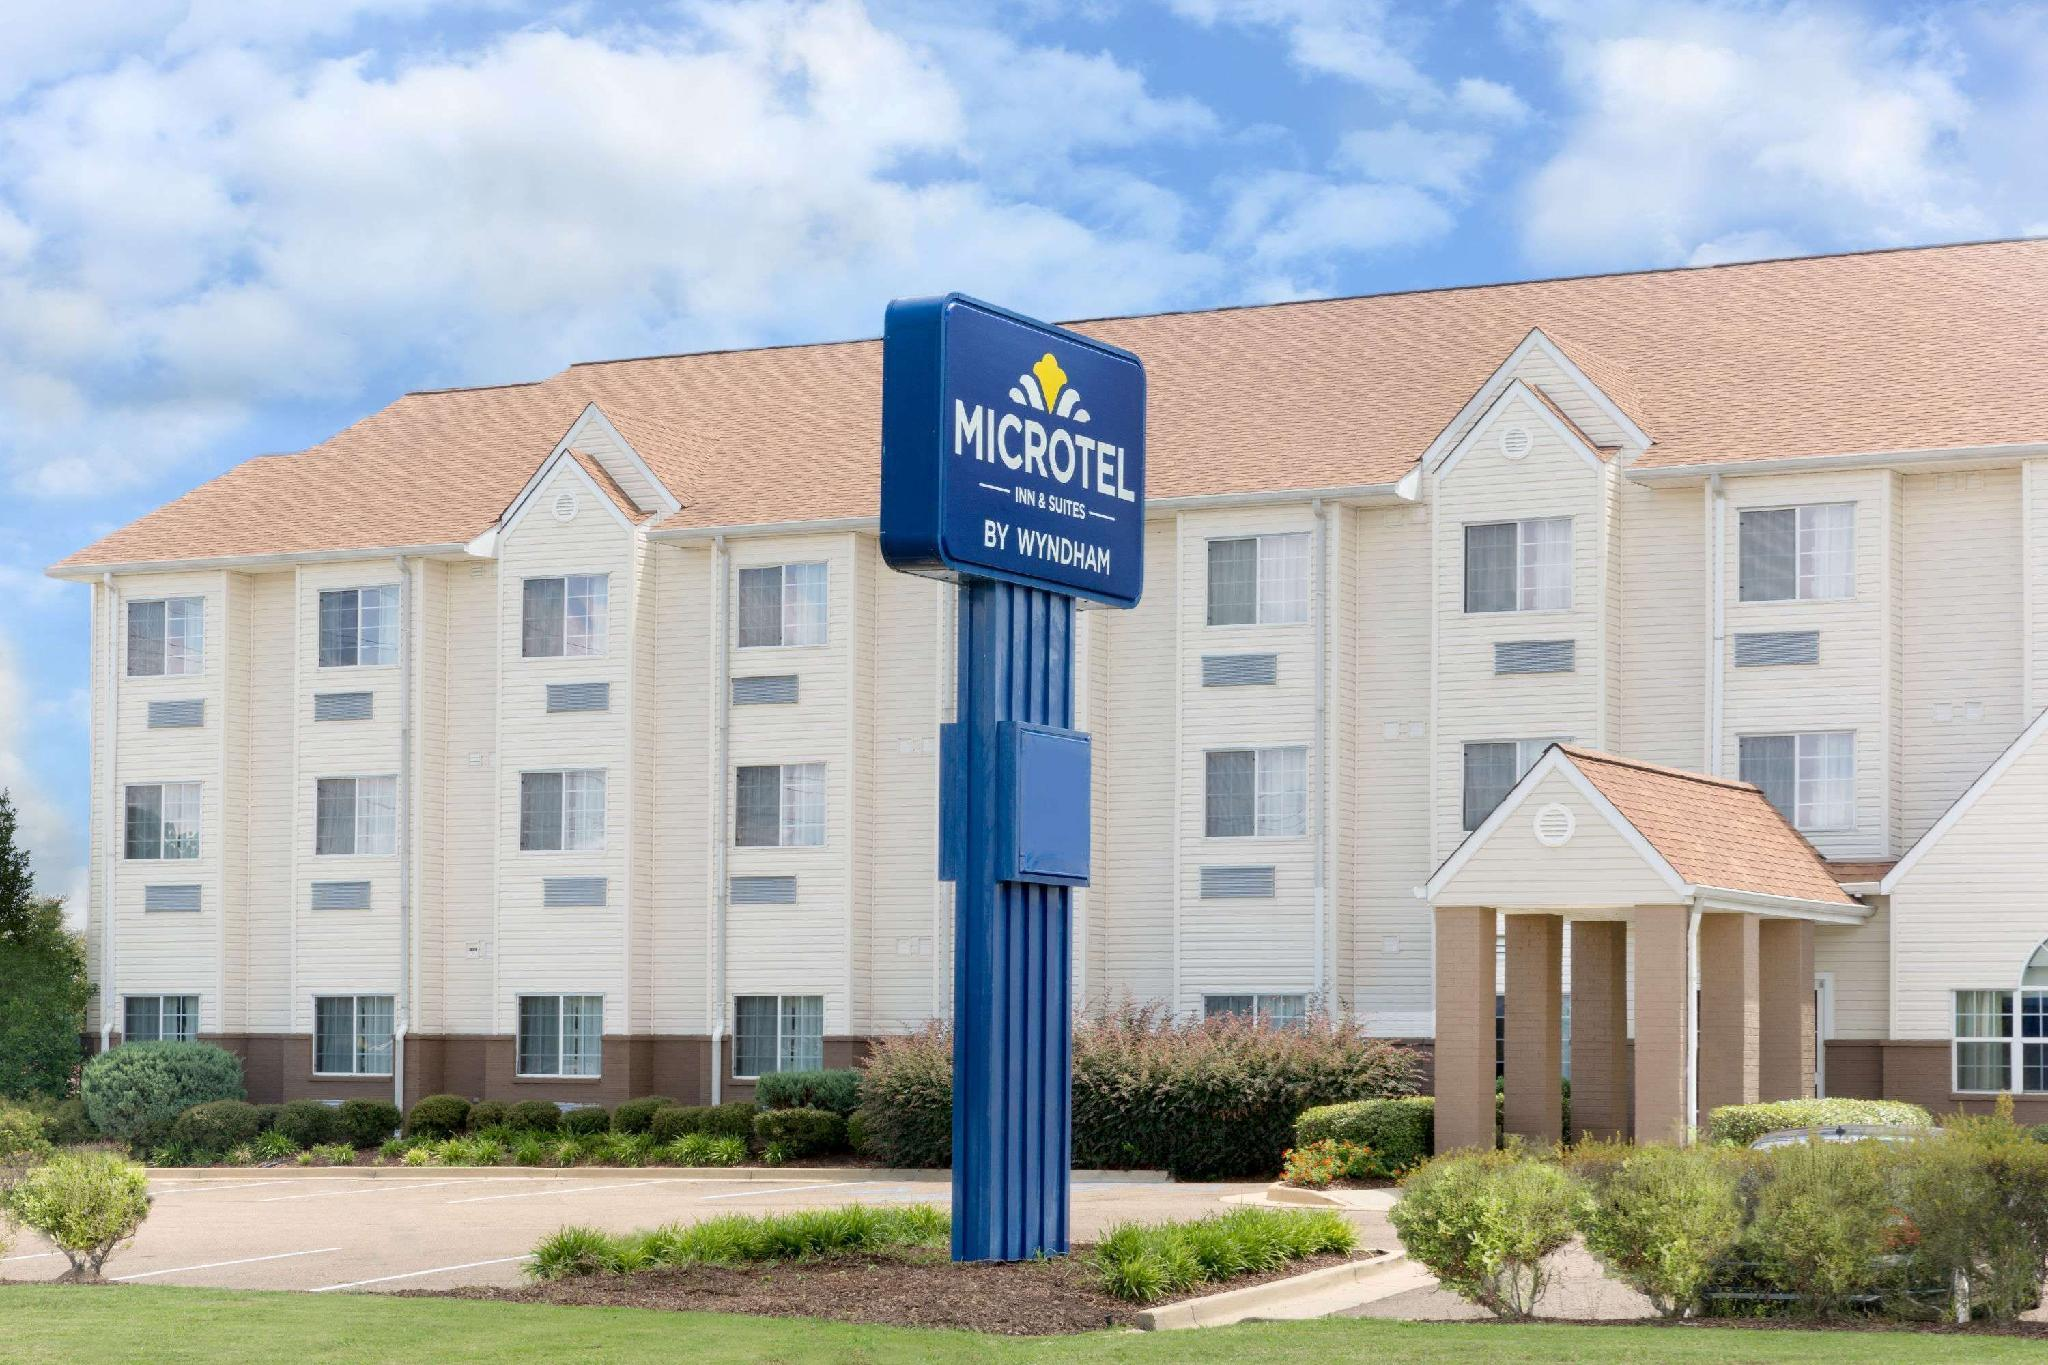 Microtel Inn And Suites By Wyndham Starkville